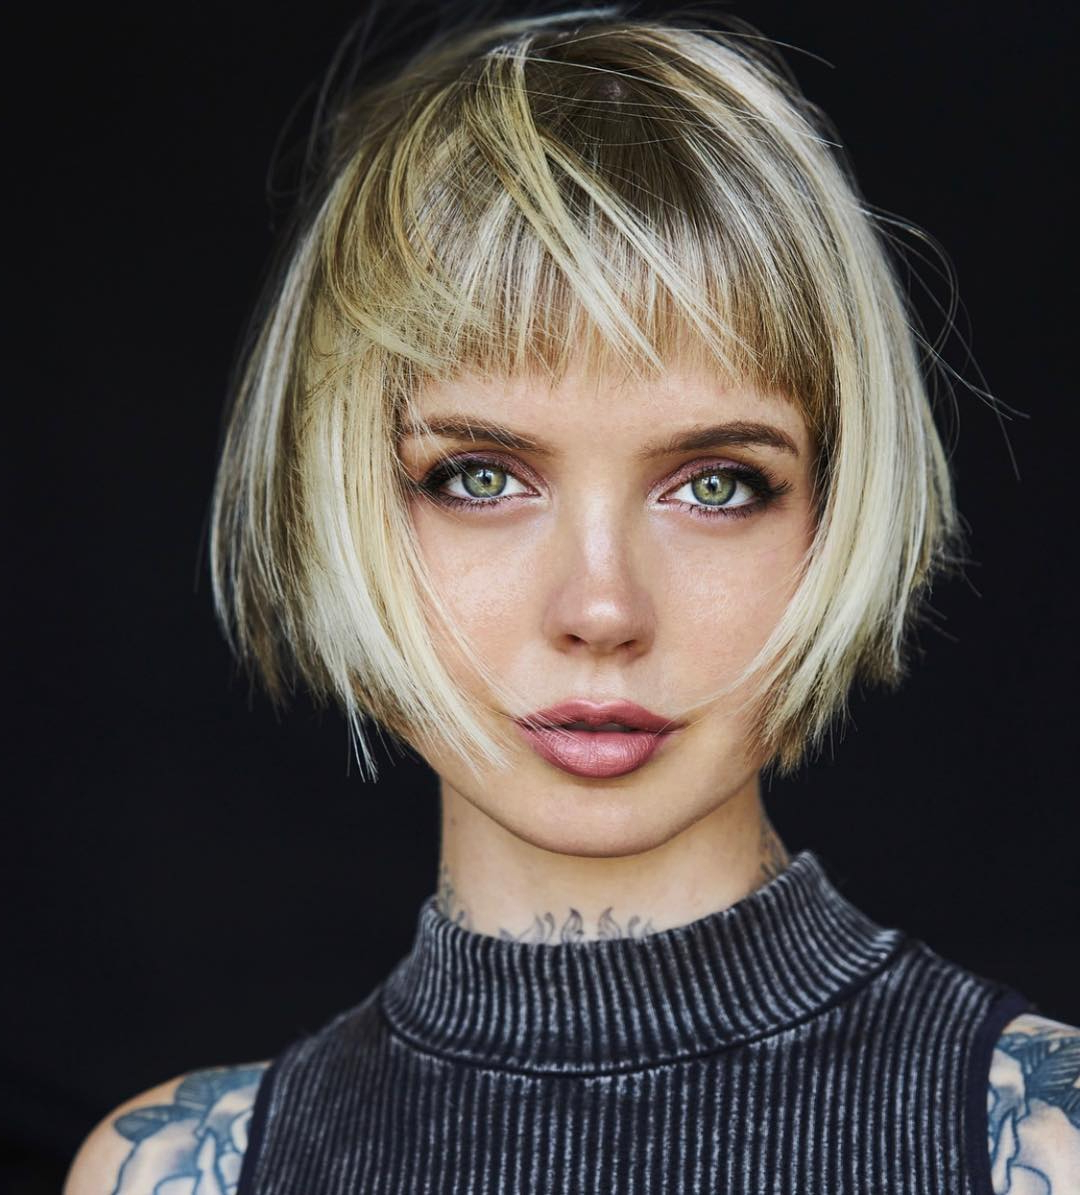 10 Trendy Messy Bob Hairstyles And Haircuts, 2020 Female In Short Bob Hairstyles With Cropped Bangs (View 15 of 20)